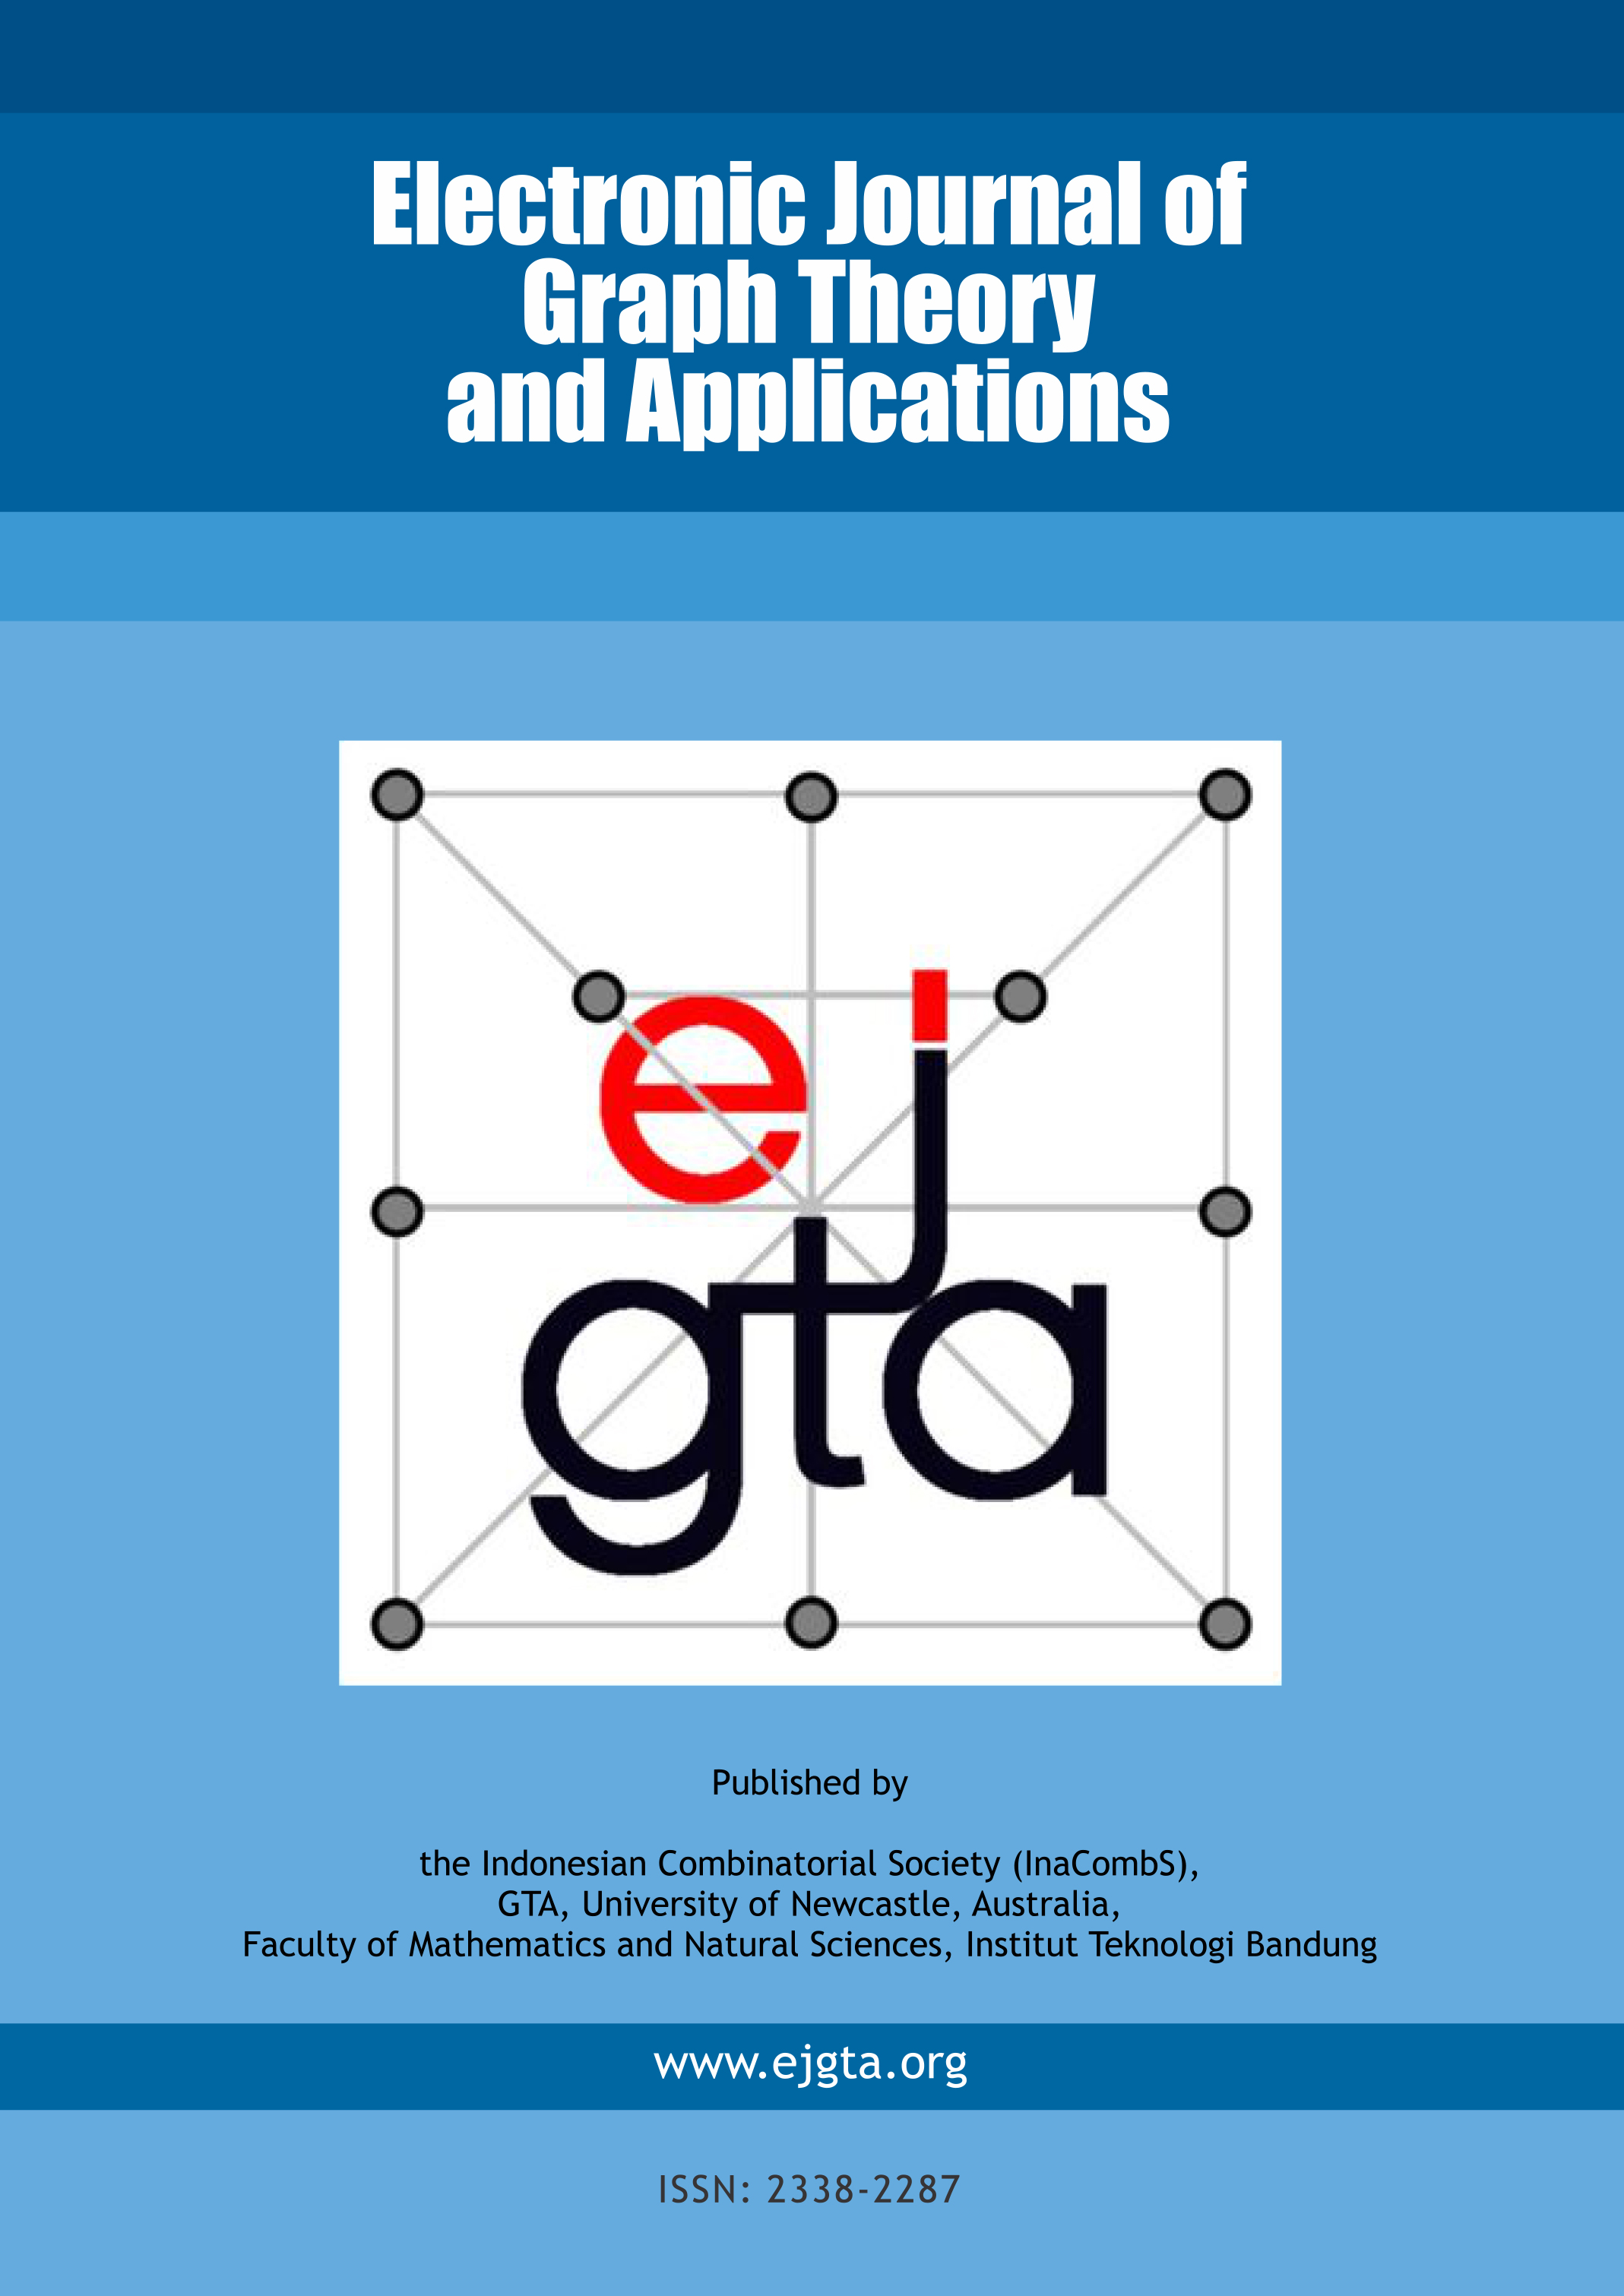 Electronic Journal of Graph Theory and Applications (EJGTA)